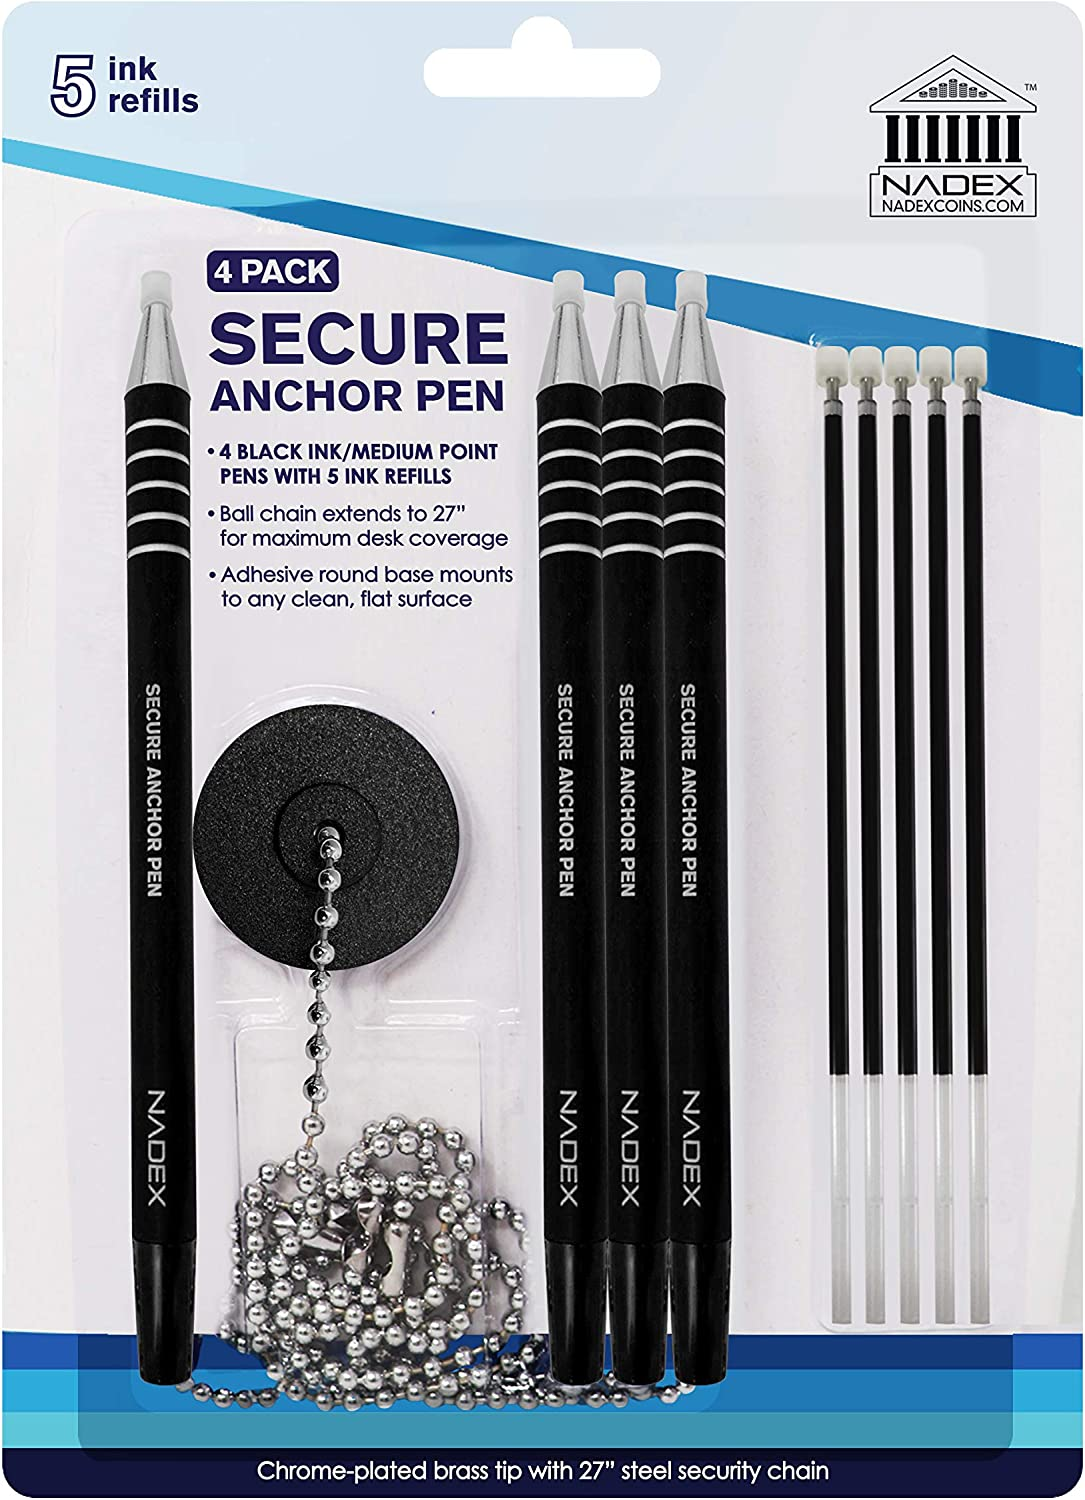 Nadex Ball and Chain Security Pen Set | 4 Pens, 1 Adhesive Mount, and 5 Refills (Black)